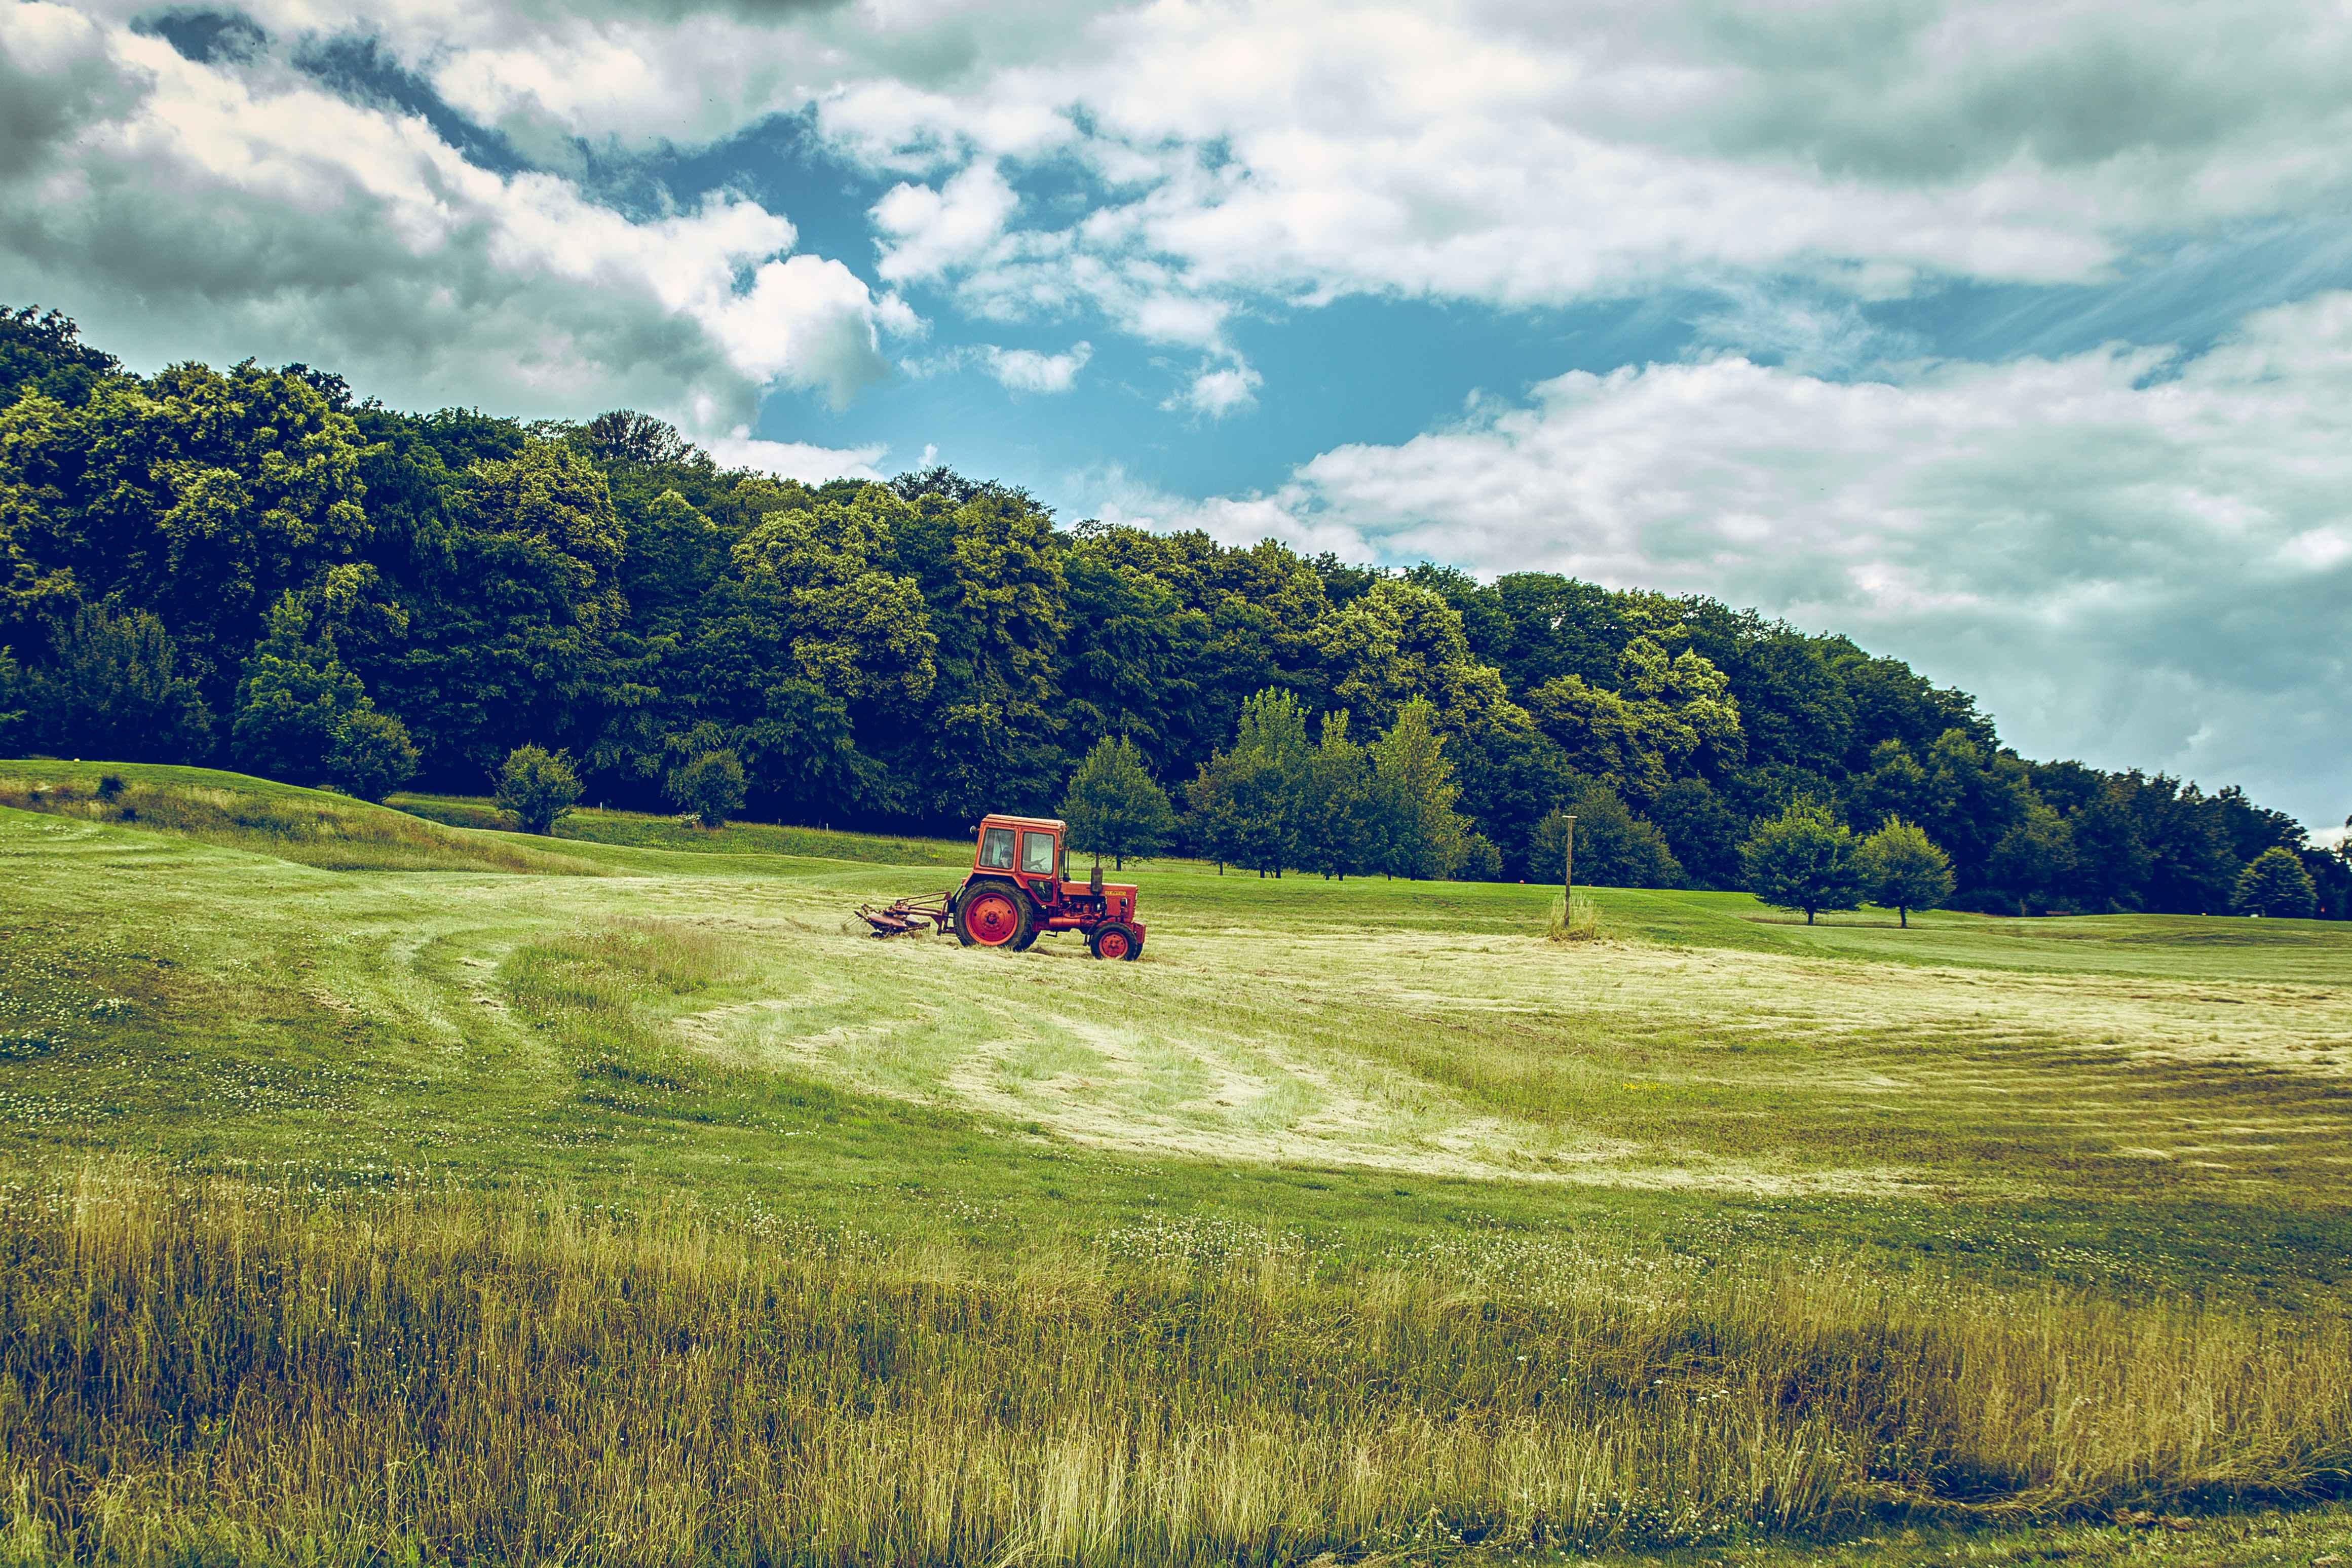 A red tractor in a green field near a forest